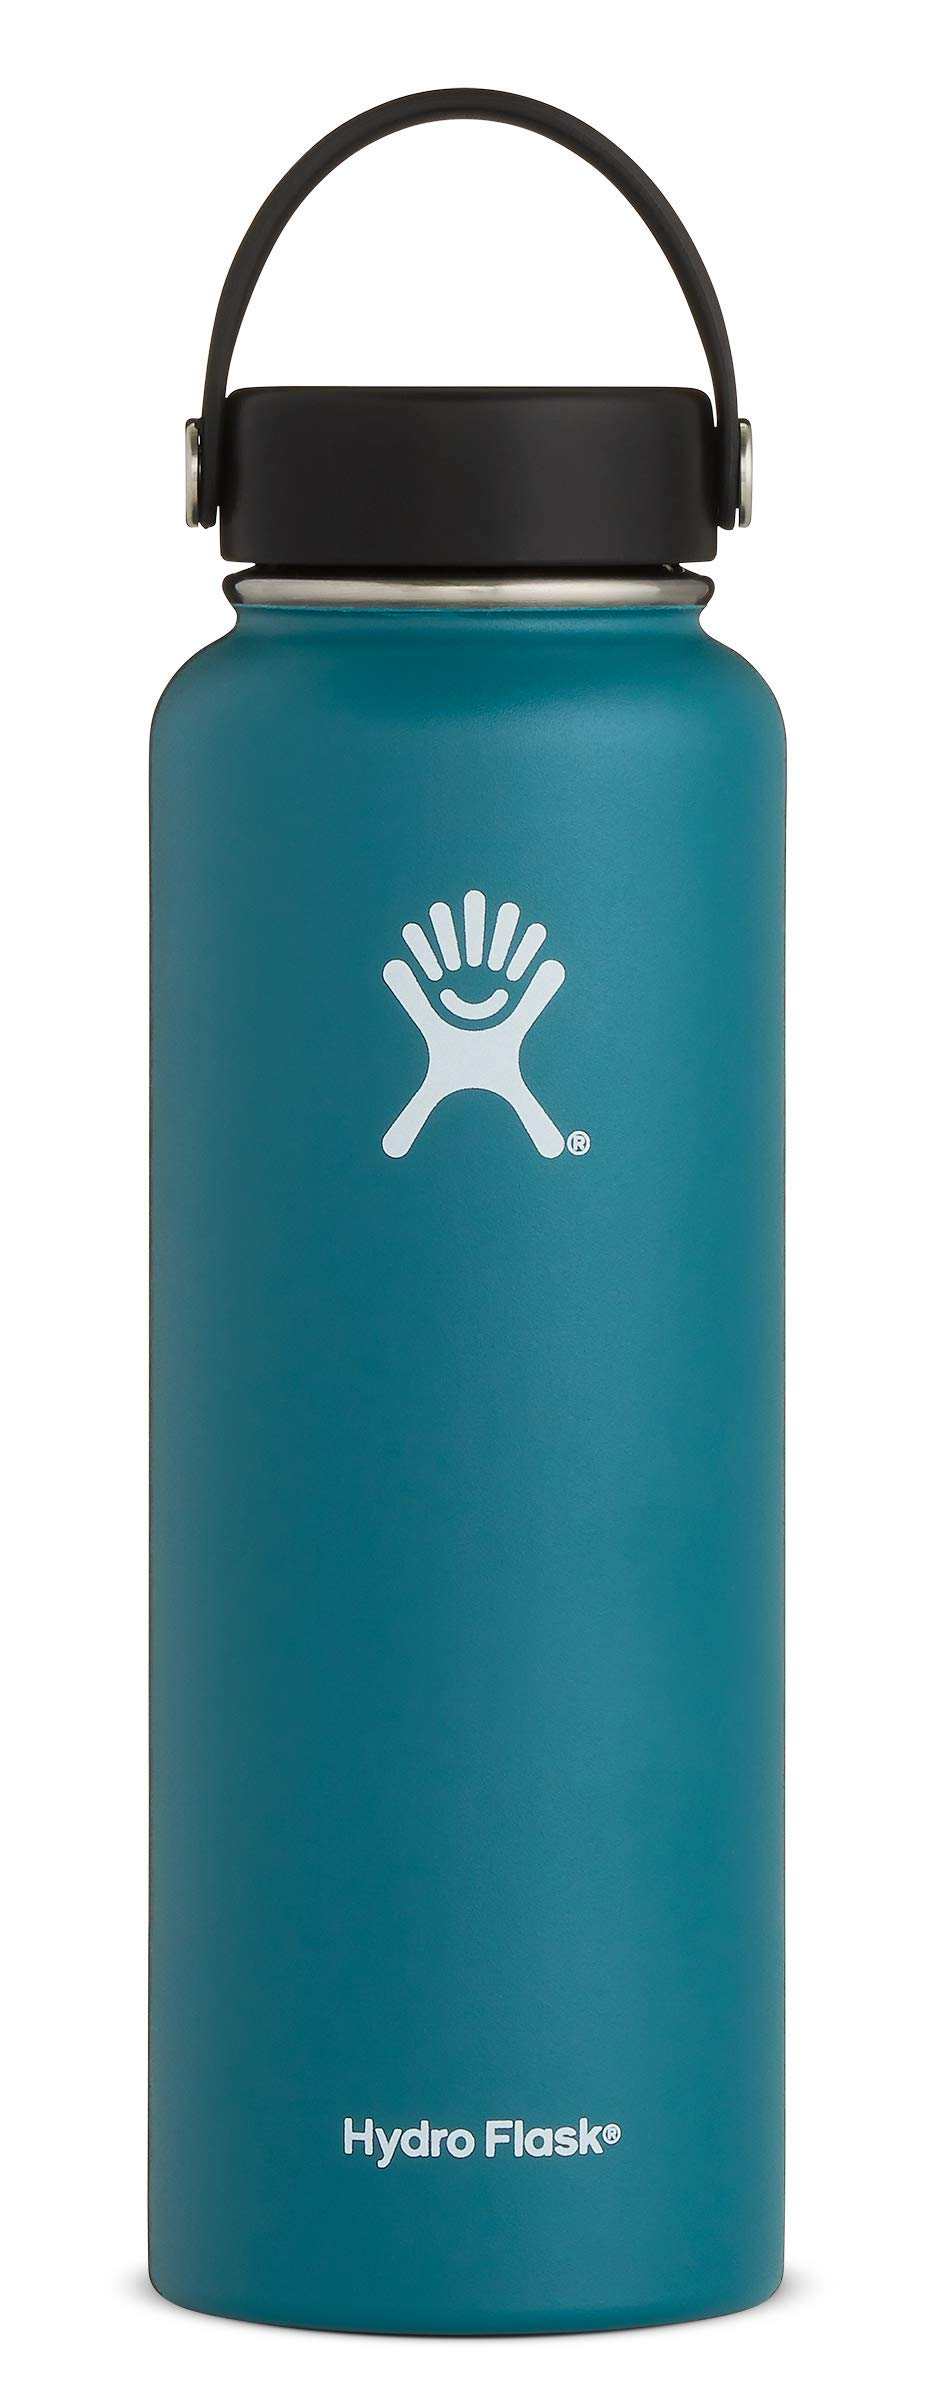 Hydro Flask Water Bottle - Stainless Steel & Vacuum Insulated - Wide Mouth with Leak Proof Flex Cap - 40 oz, Jade by Hydro Flask